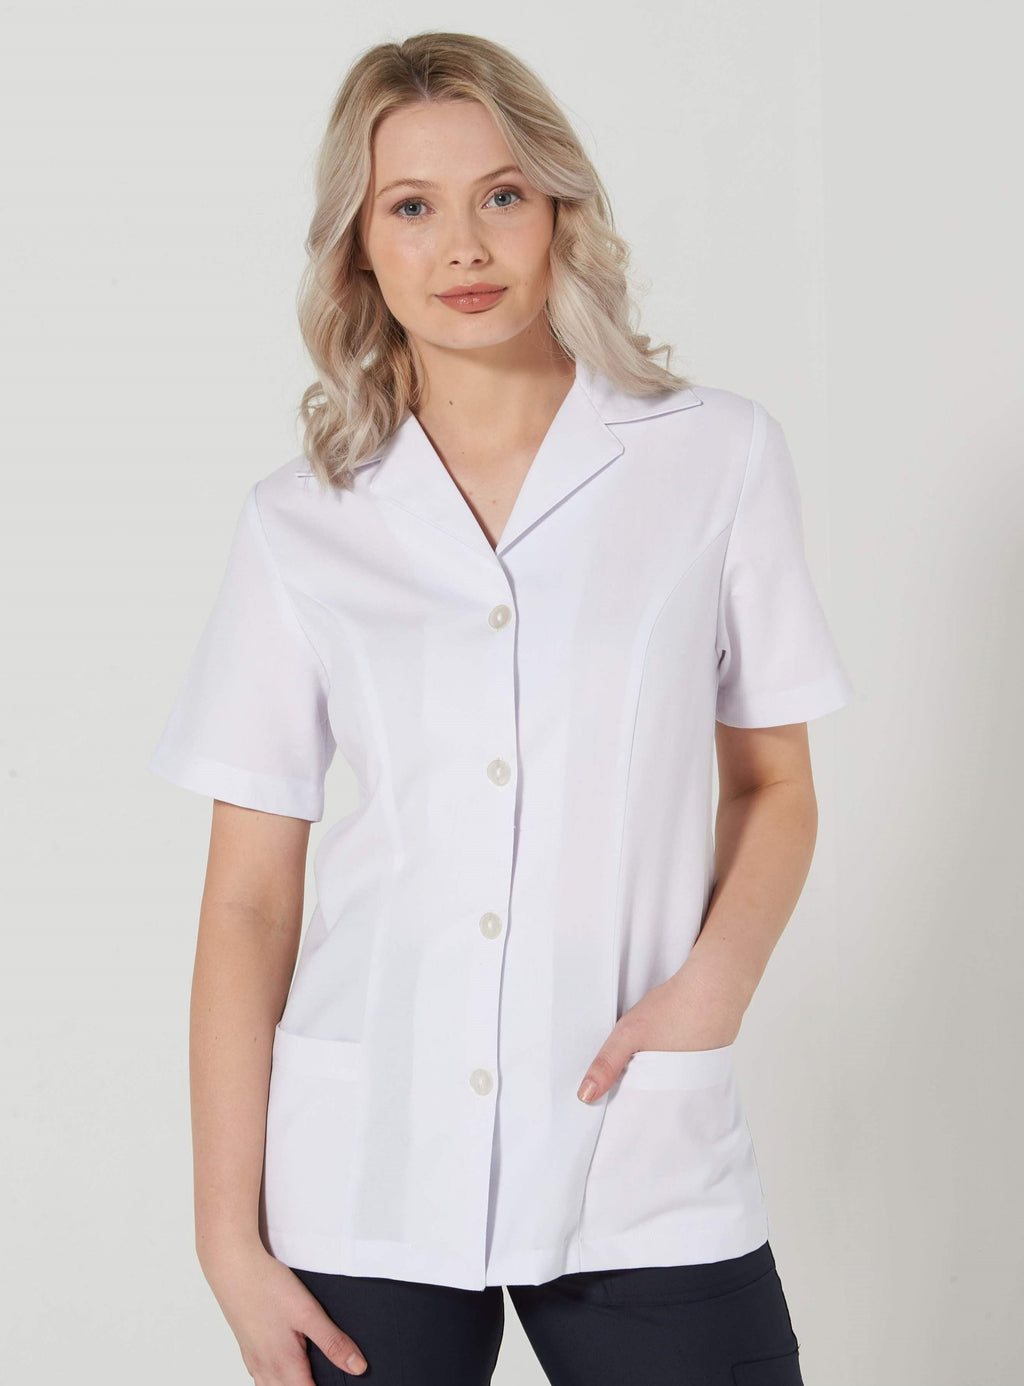 903S-LU-WHT: Short sleeve button up Pharmacy jacket